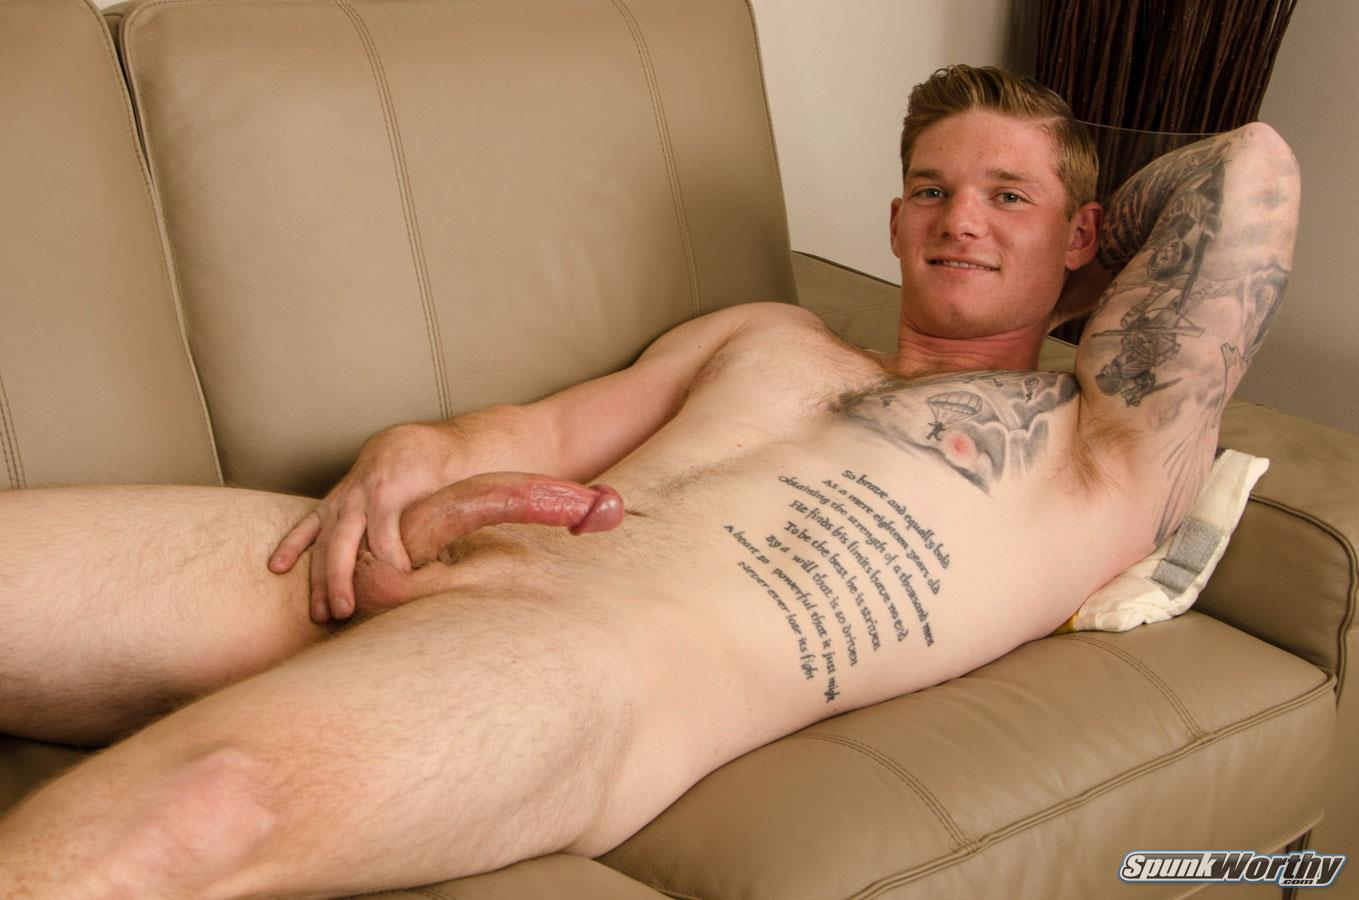 SpunkWorthy-Doug-Naked-Marine-Jerking-Off-Redhead-14 Muscular Redhead Marine Strokes His Magnificently Big Cock